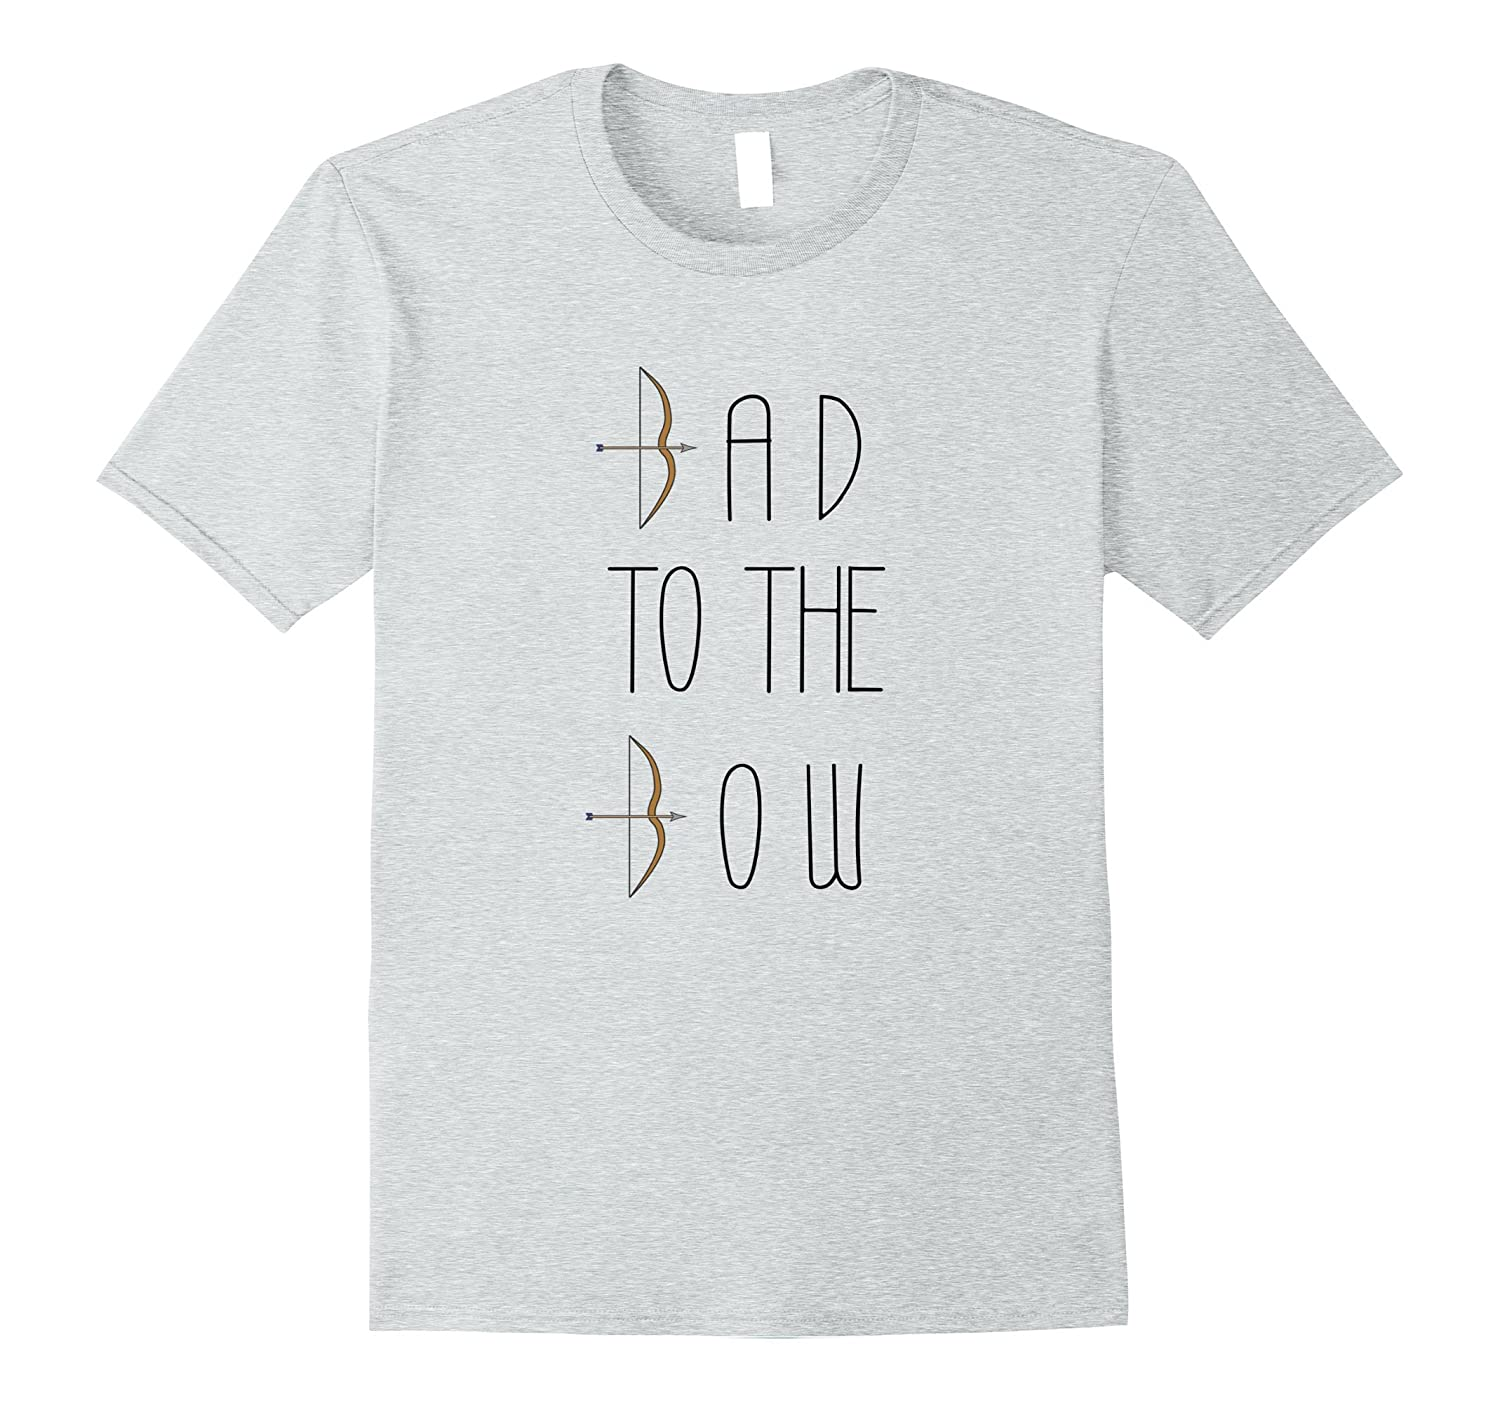 a1a7591f Bad To The Bow T-shirt, Archery Shirt, Bow & Arrow Tee-ANZ ⋆ Anztshirt